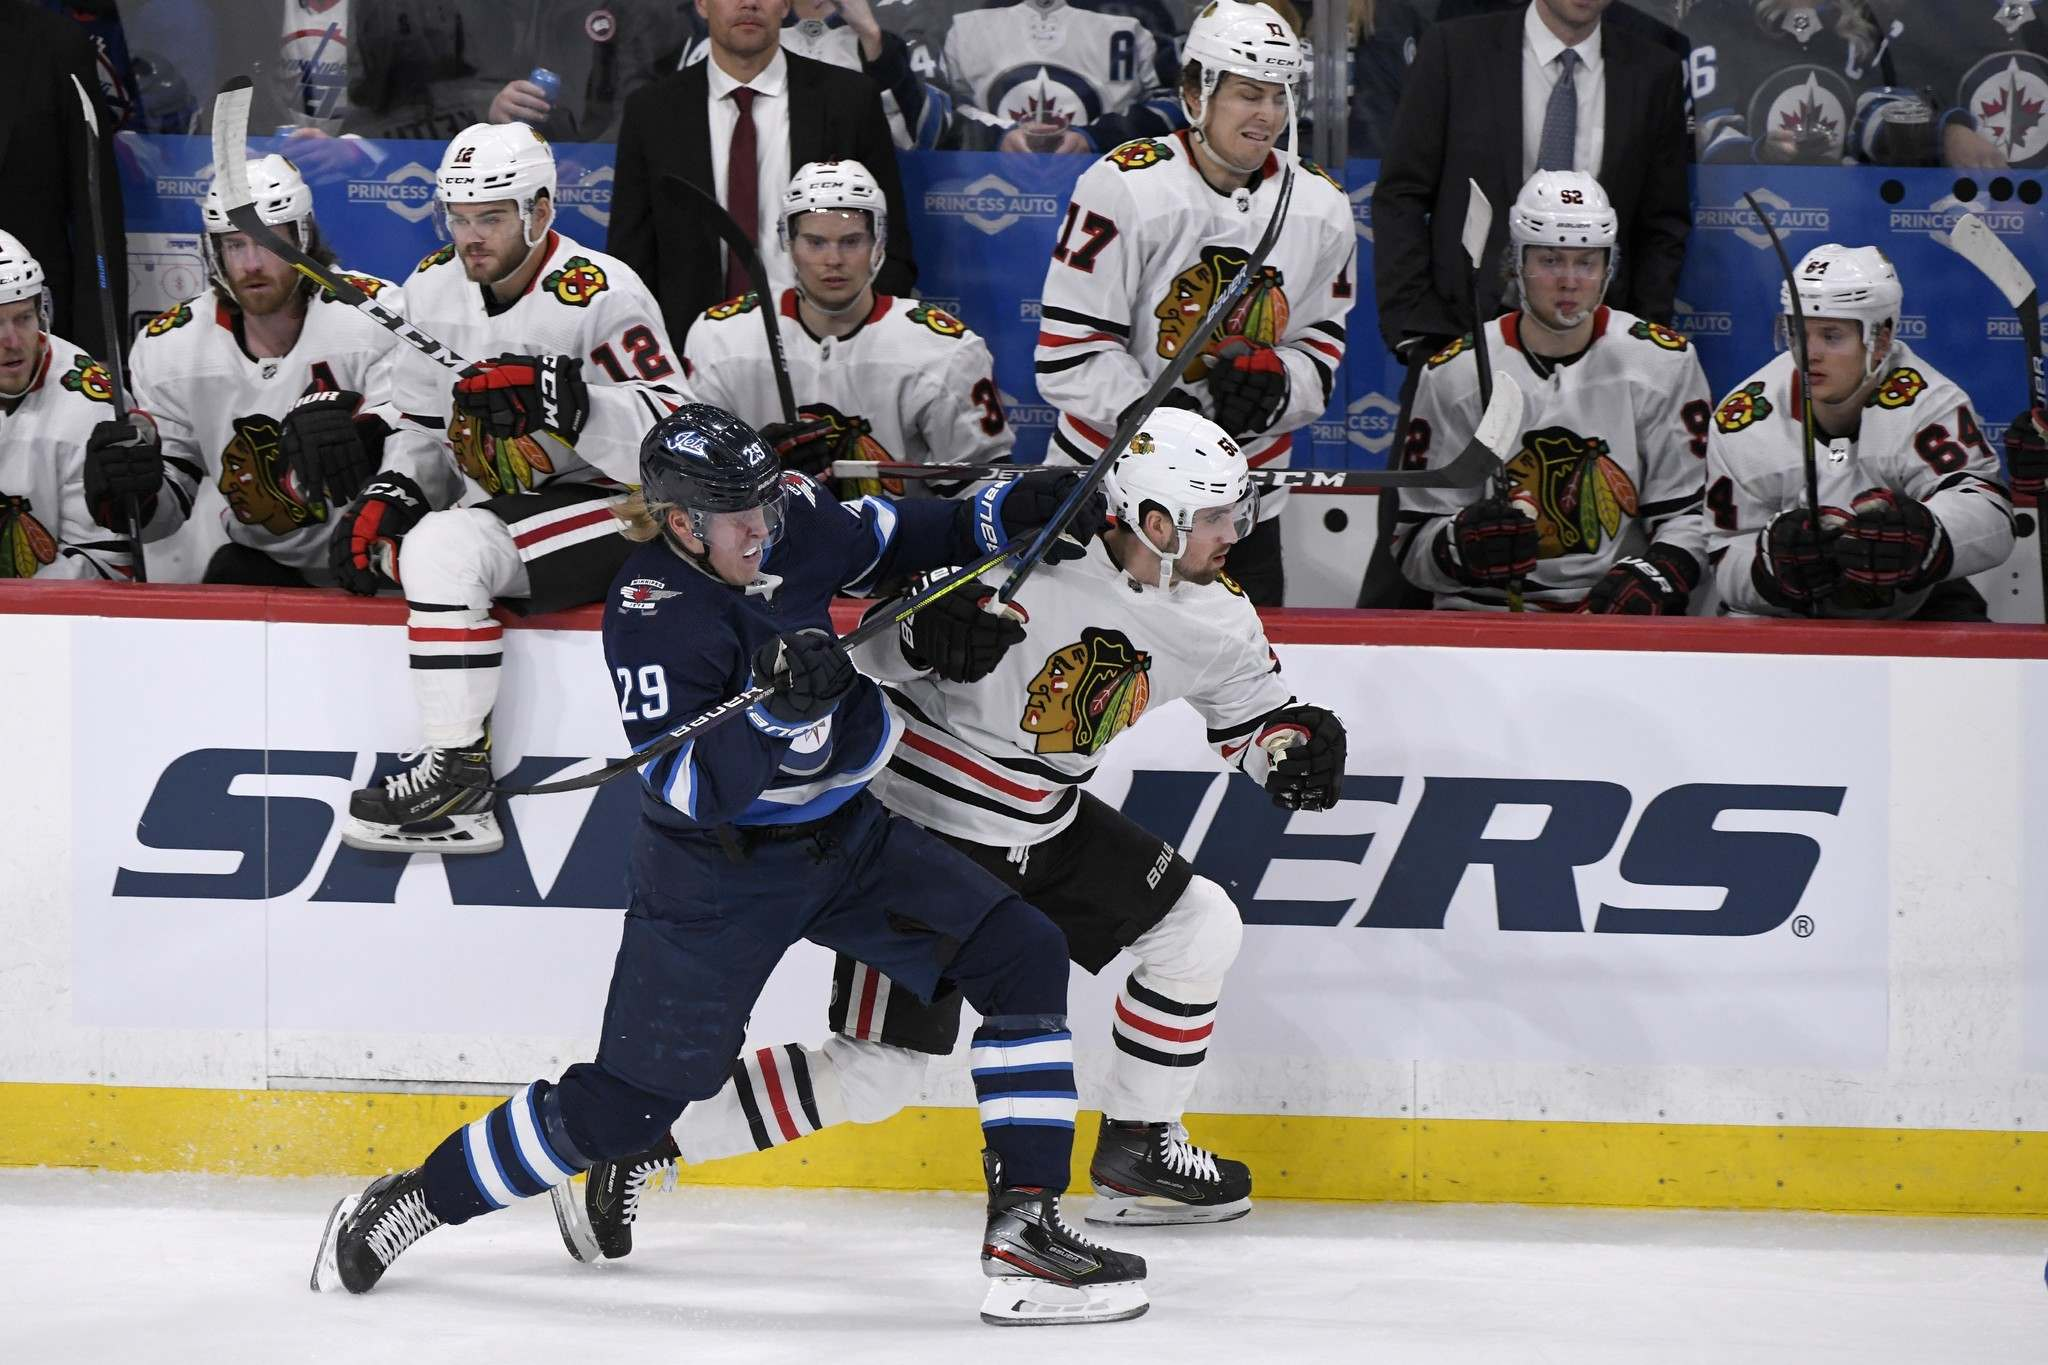 Winnipeg Jets' Patrik Laine (29) checks Chicago Blackhawks' Erik Gustafsson (56) in front of the Blackhawks bench during first period NHL action in Winnipeg on Sunday. Feb. 16, 2020. THE CANADIAN PRESS/Fred Greenslade</p>